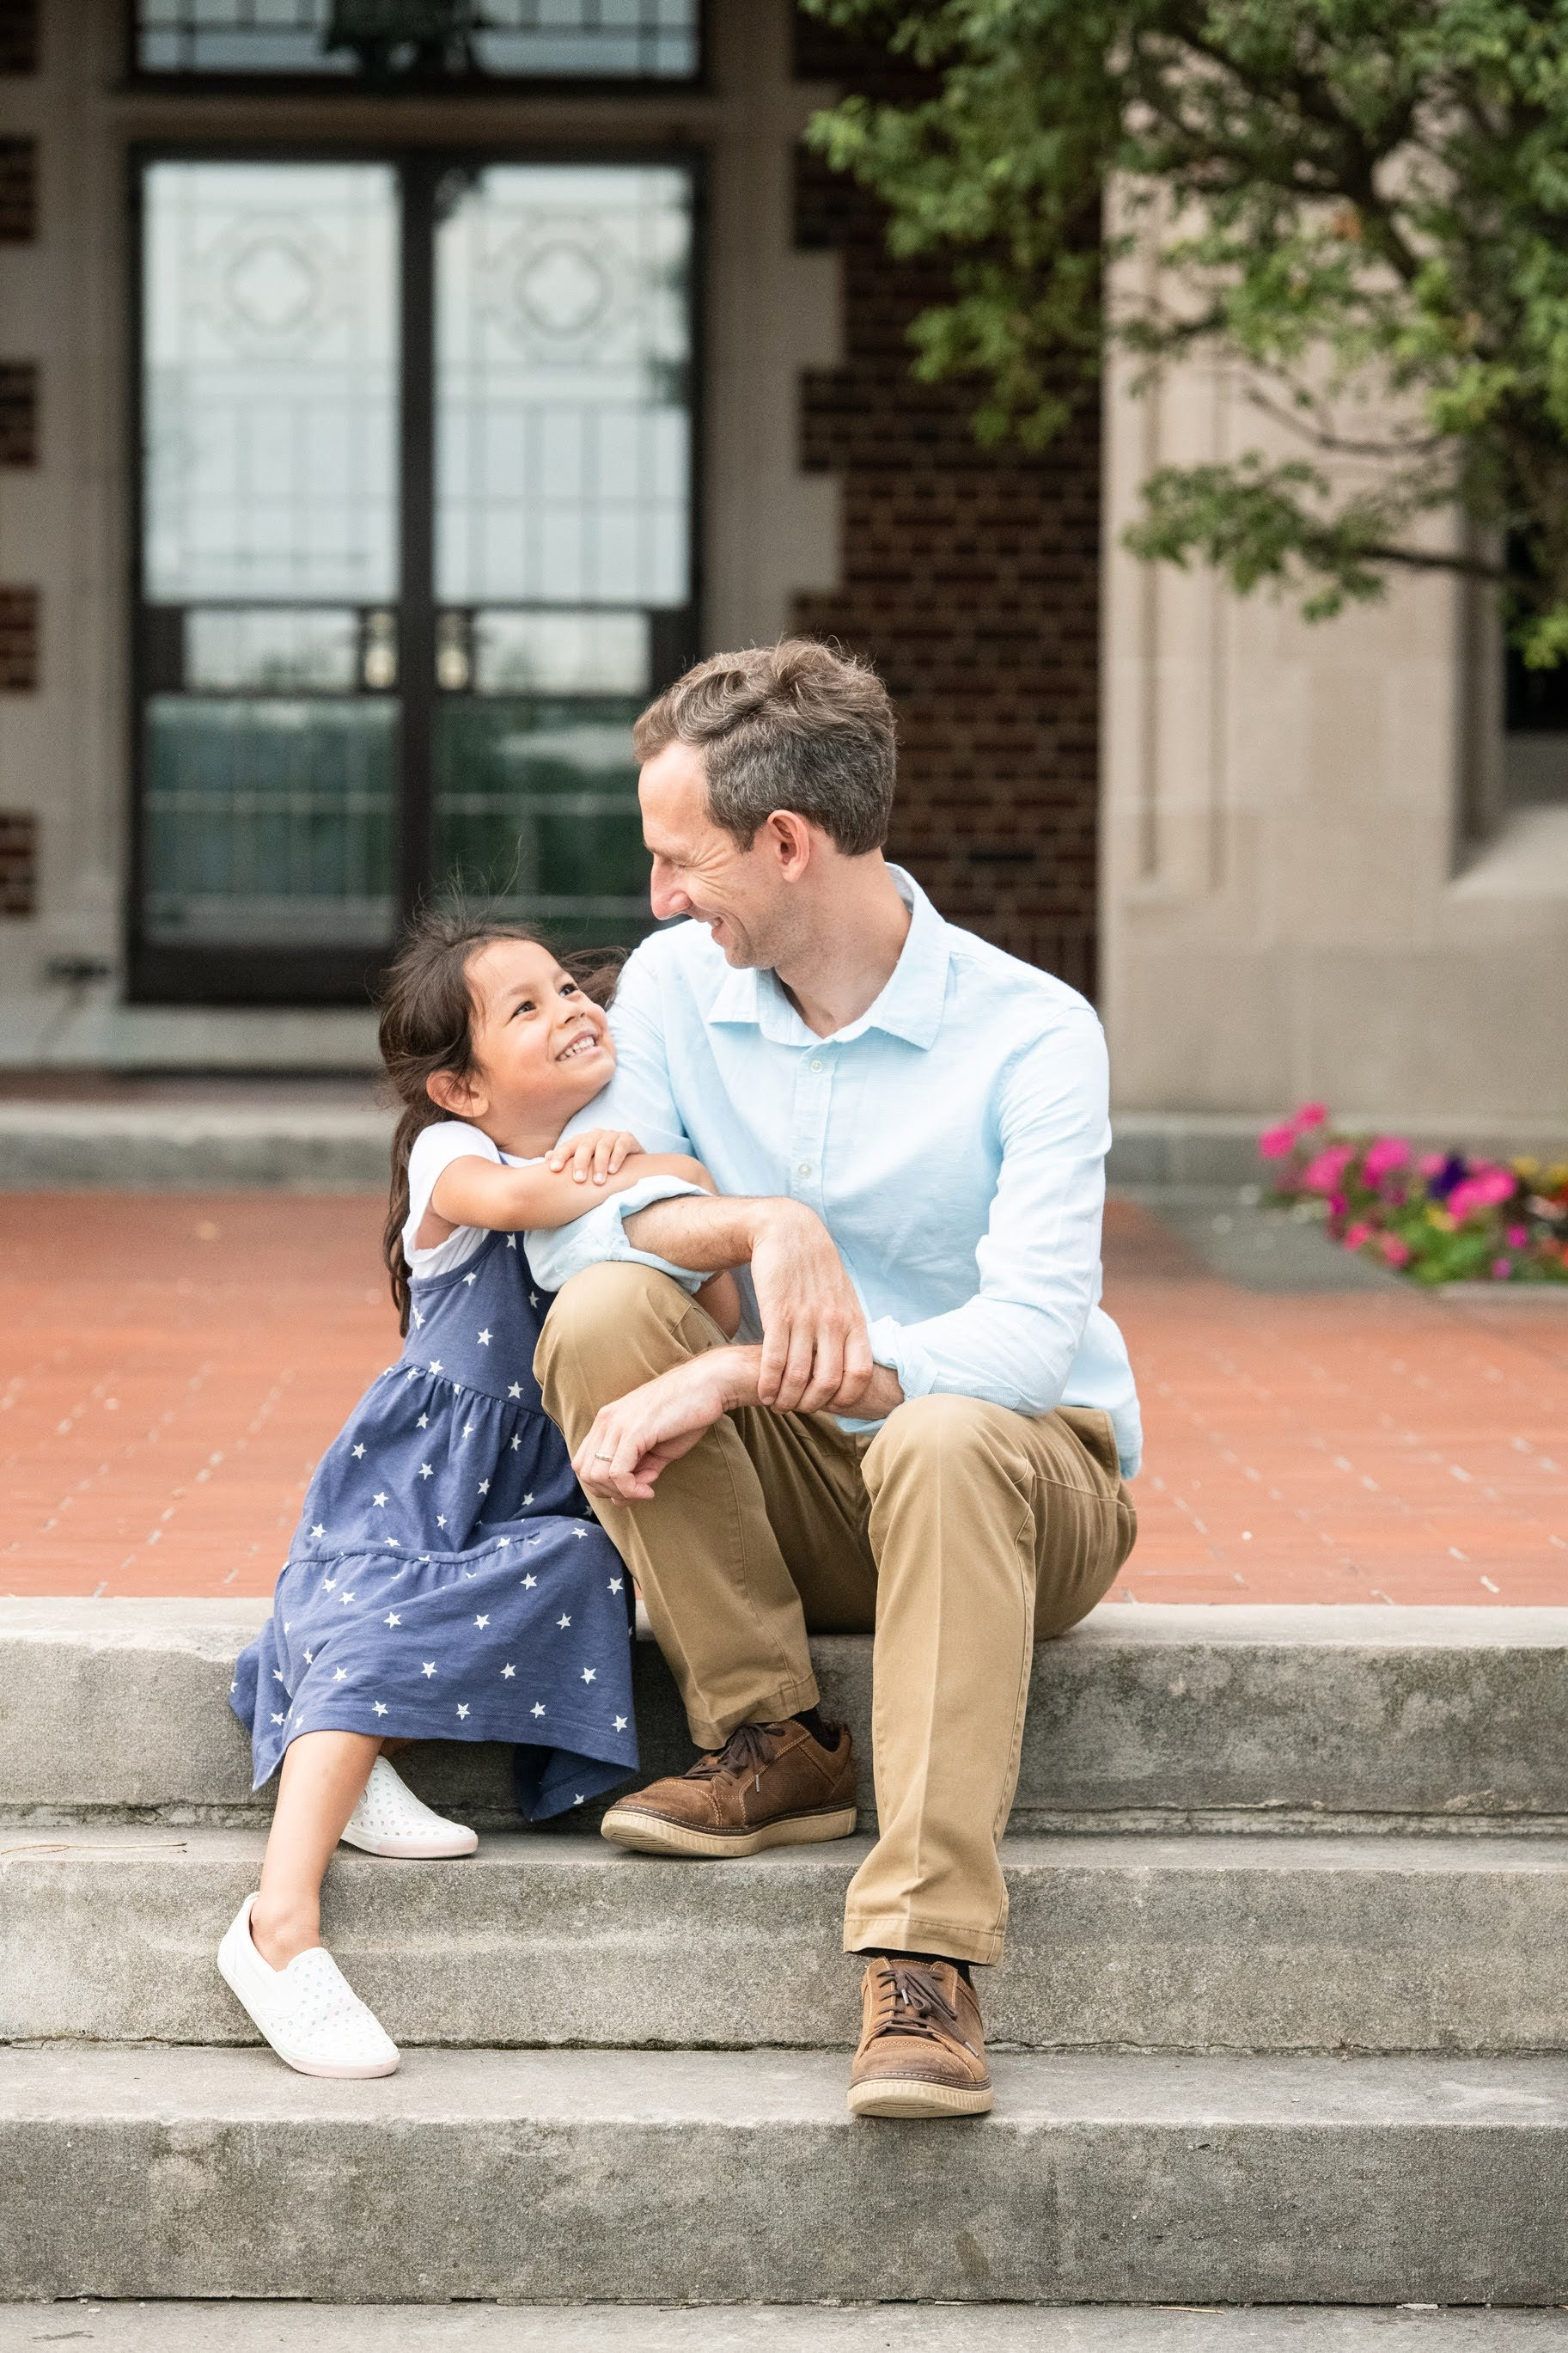 Fairfield County Family Photo Shoot | Photo by Erica Carryl - Vine & Branch Photography | Taste As You Go